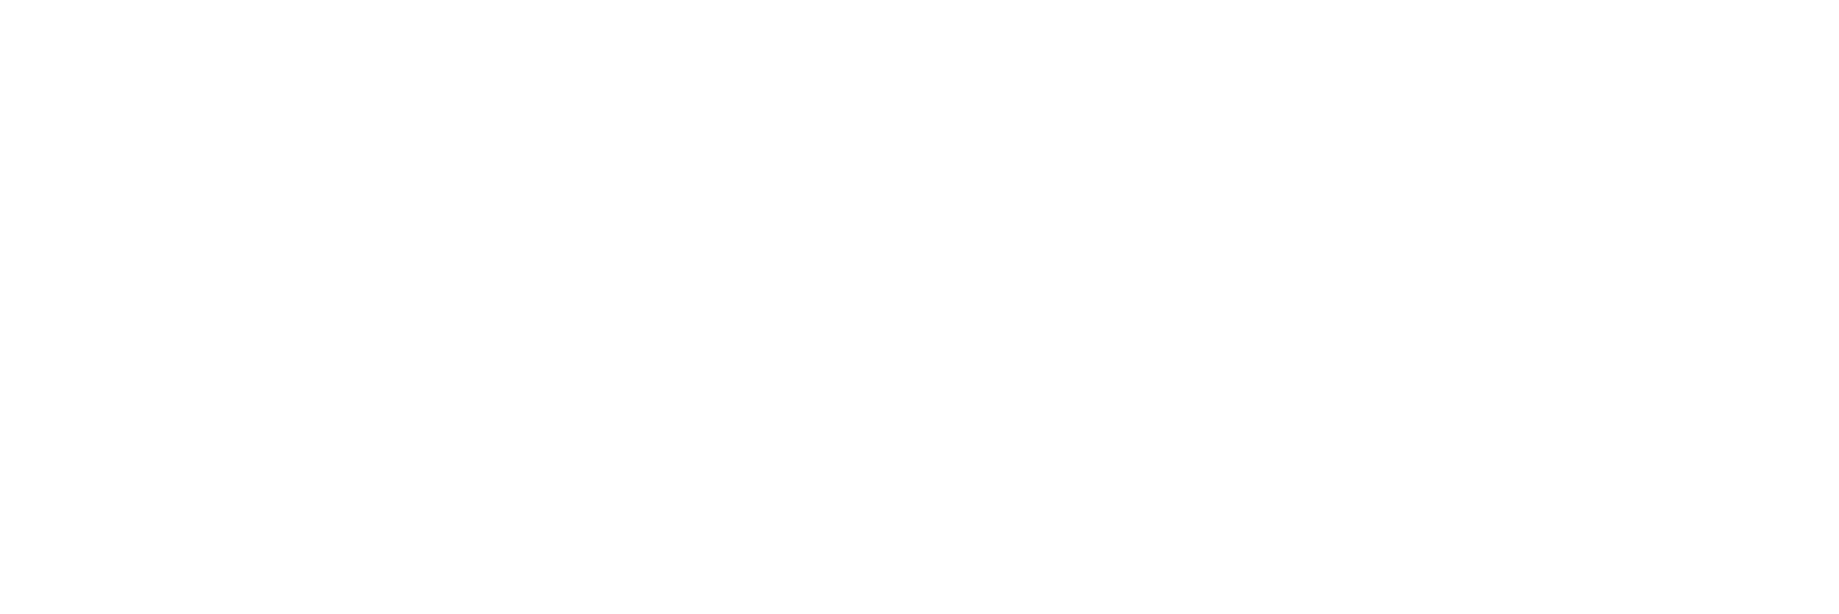 Cal Coast Adventures Logo